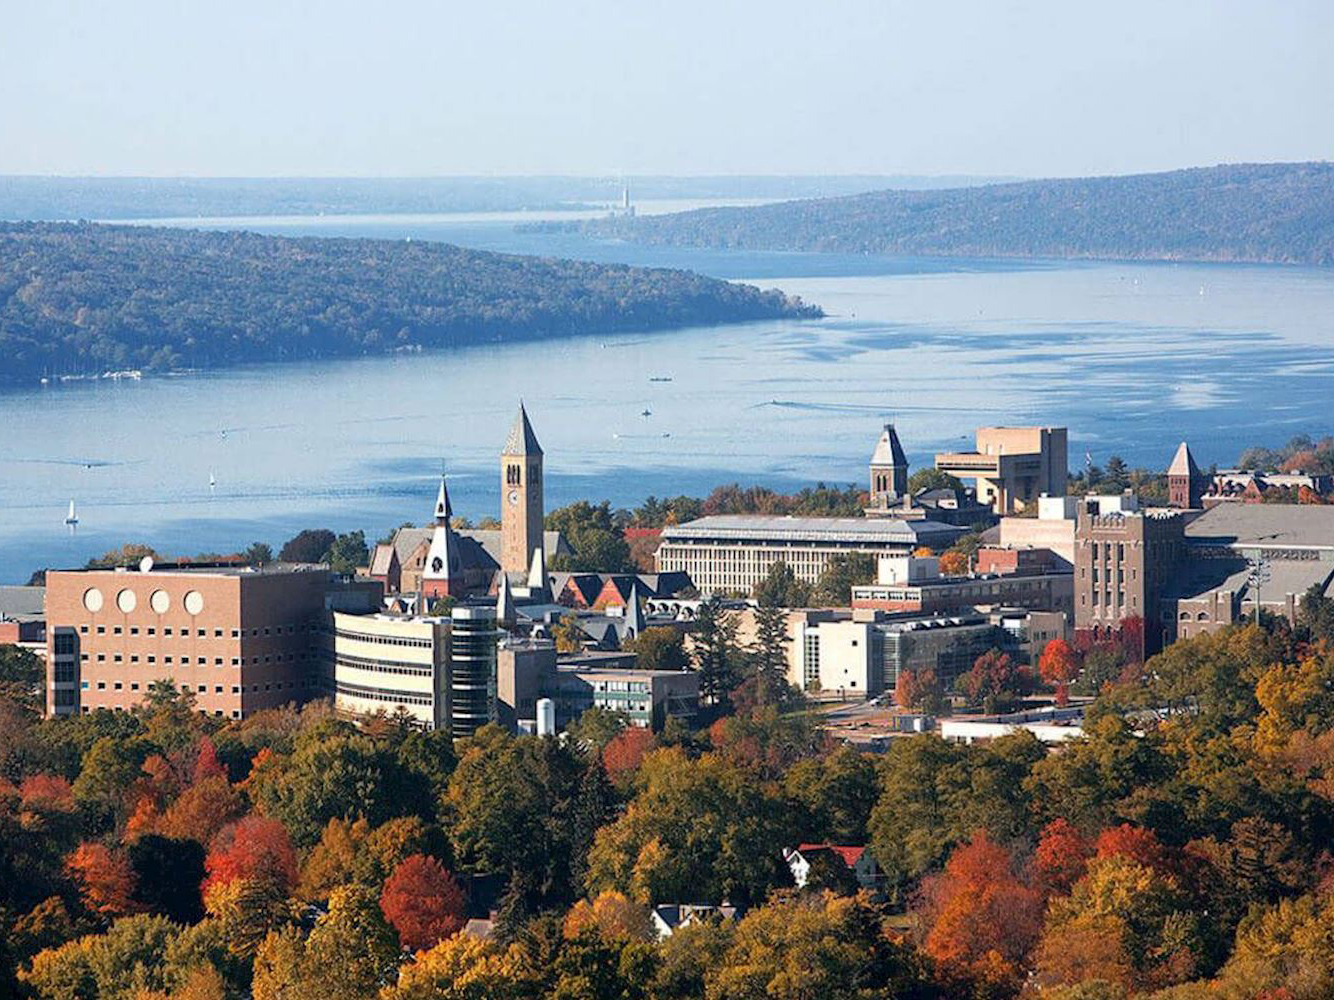 the-statler-cornell-university-hotel-ithaca-new-york-1-top copy.jpg